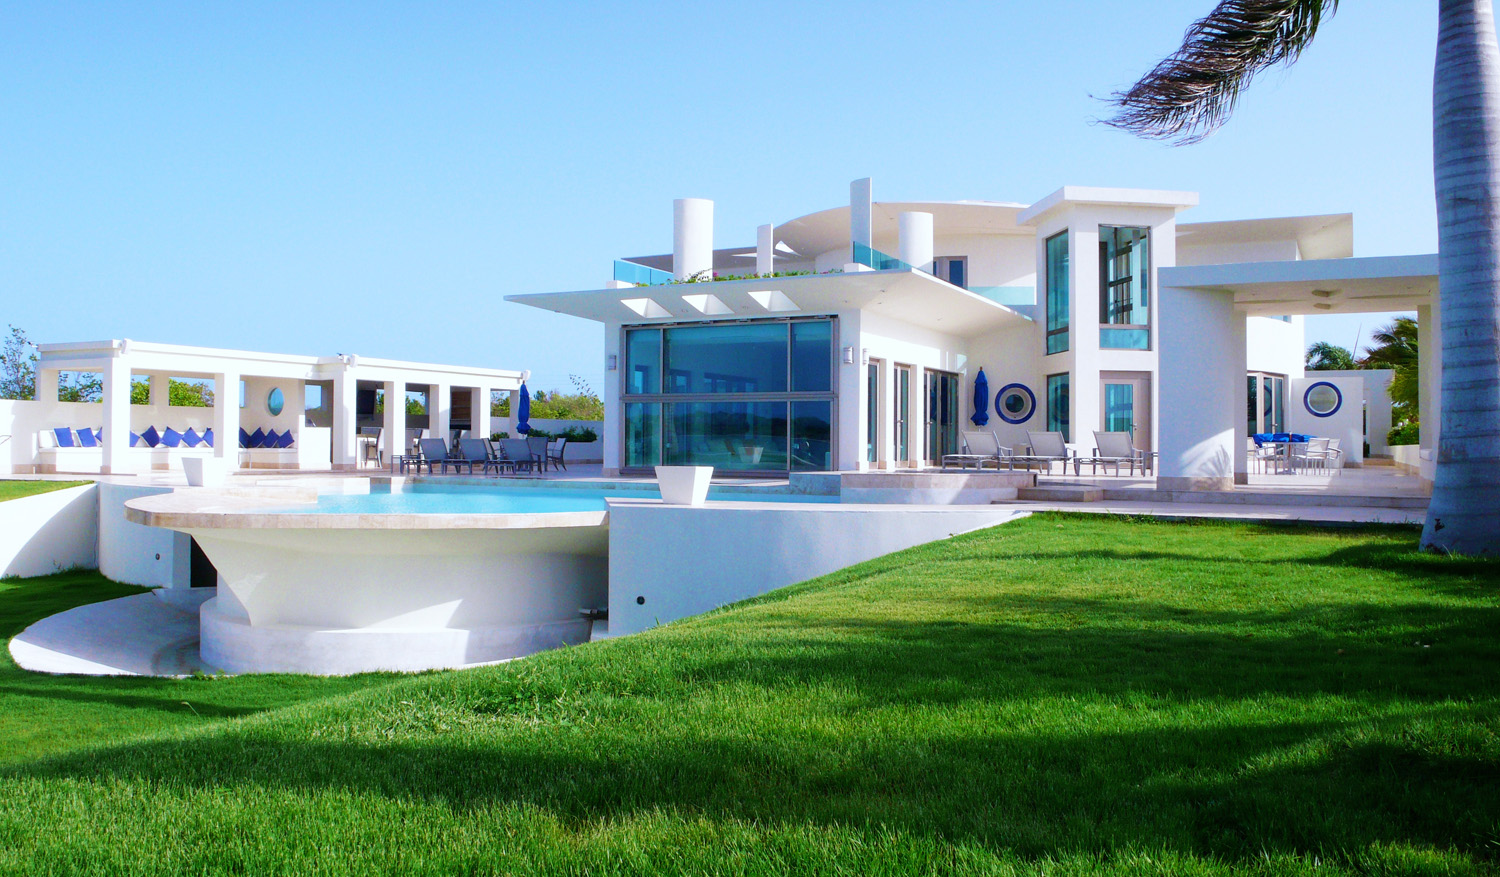 Luxury Houses Villas And Hotels Luxury White Family Villa Design In Carribbean